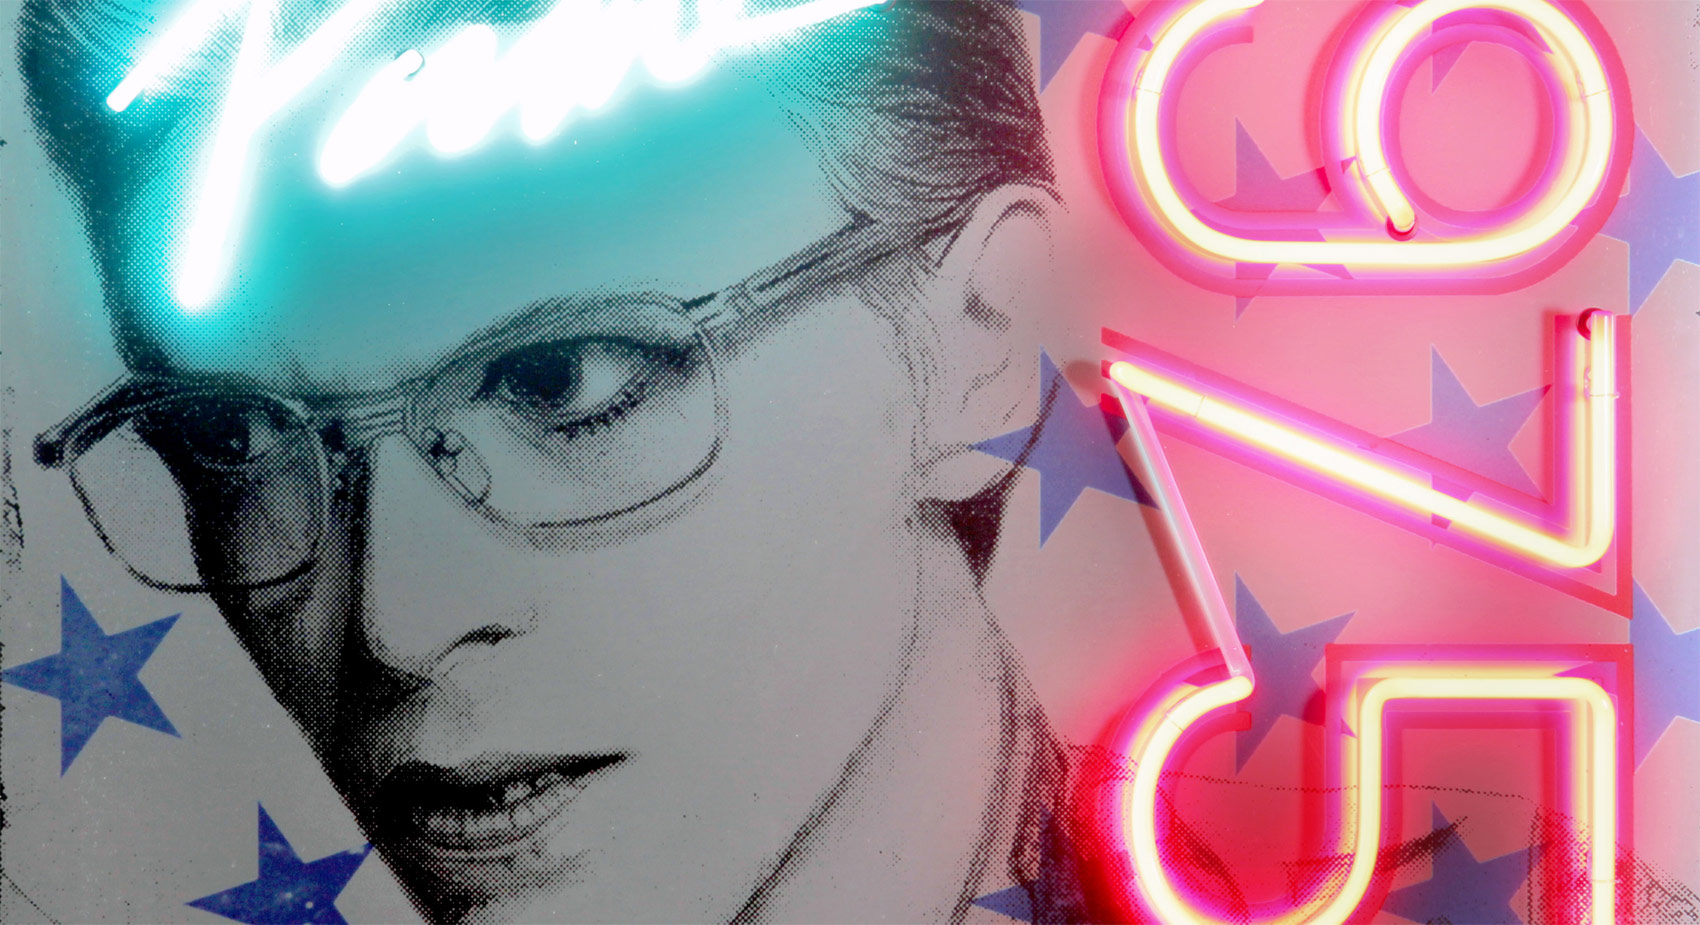 Neon Artist Louis Sidoli Pays Homage To Bowie's 'Golden Years'